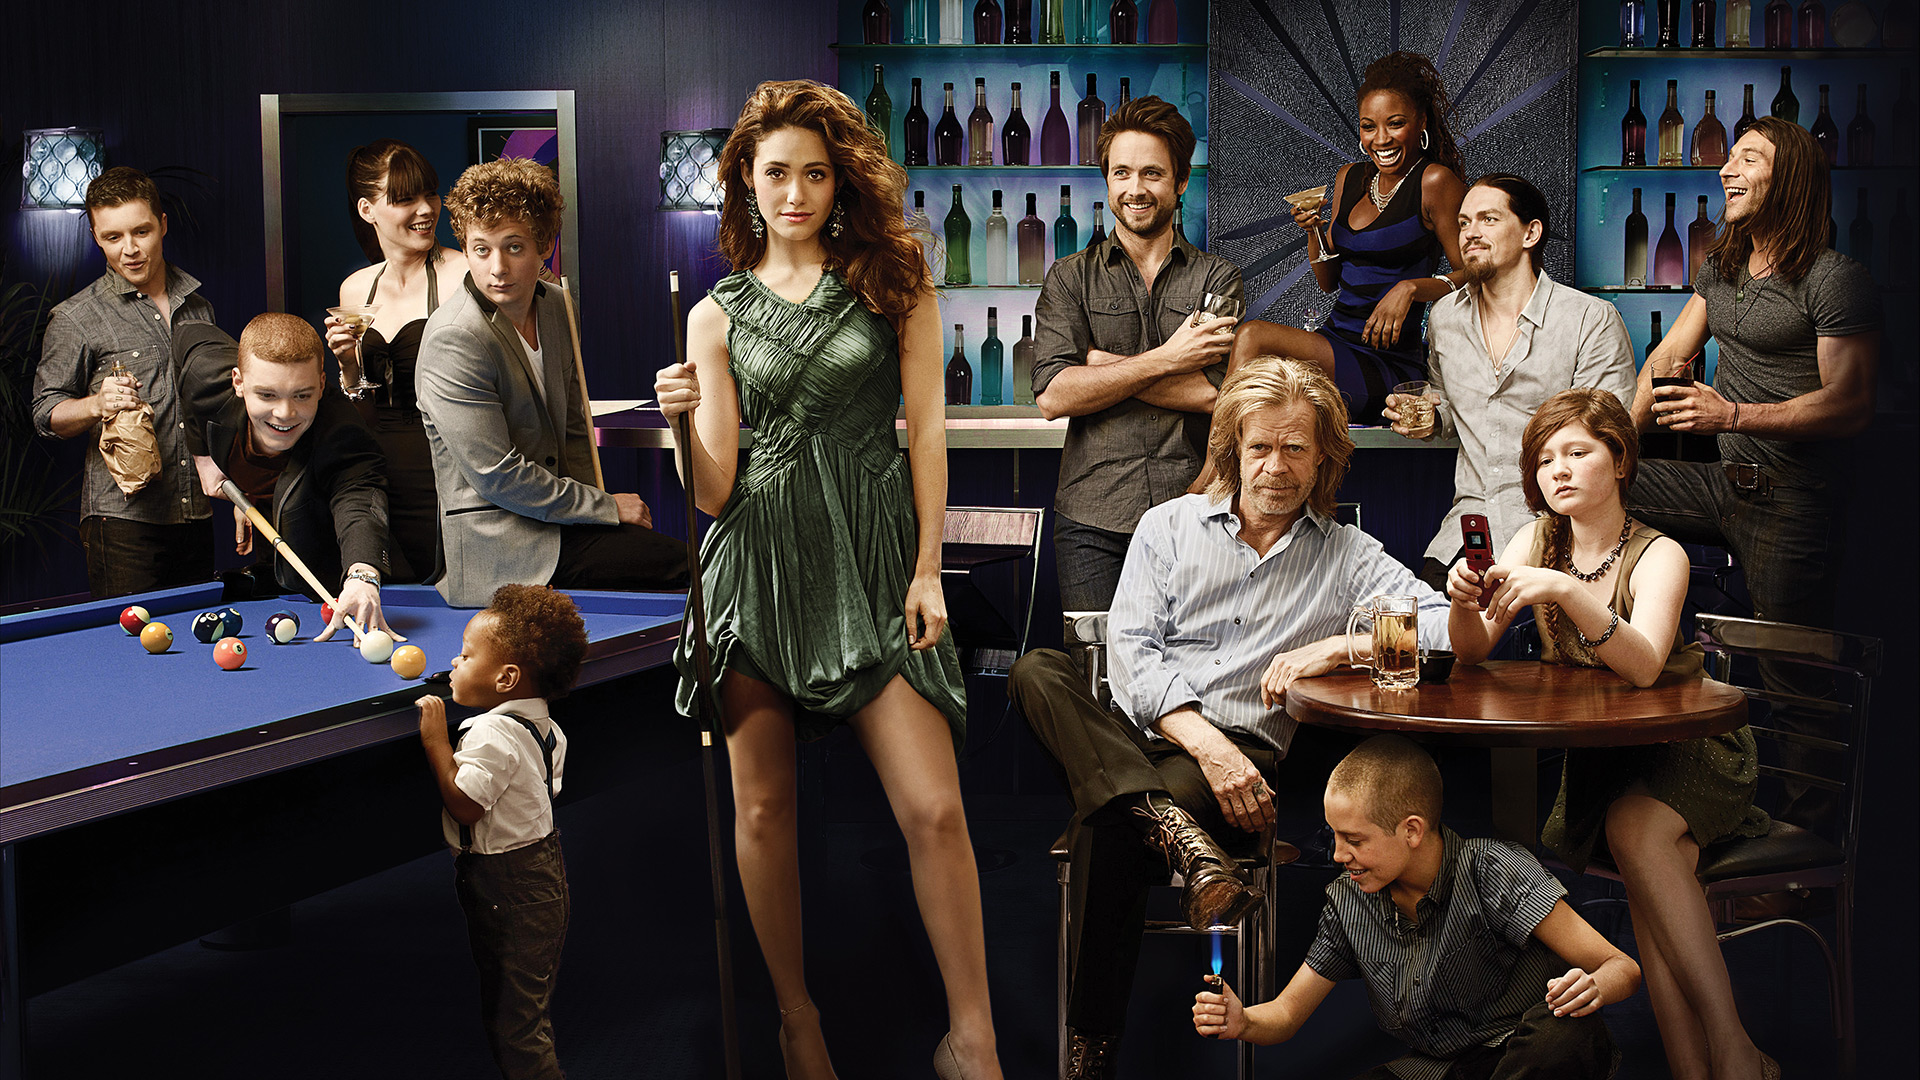 Shameless Season 4 Cast